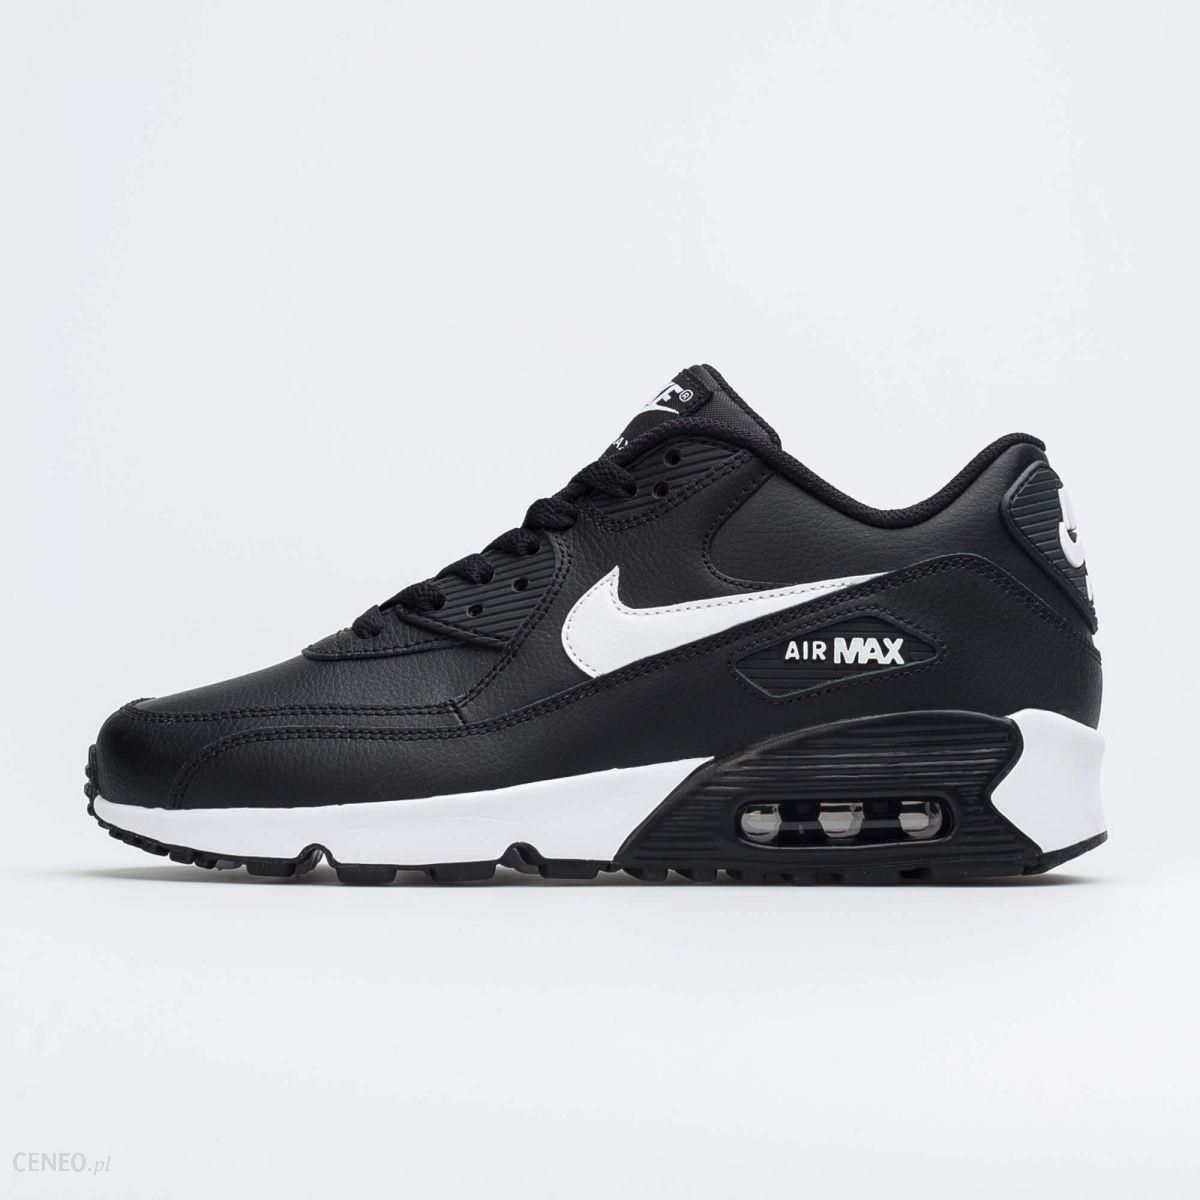 Air Max 90 Leather (GS) 833412 025 Ceny i opinie Ceneo.pl